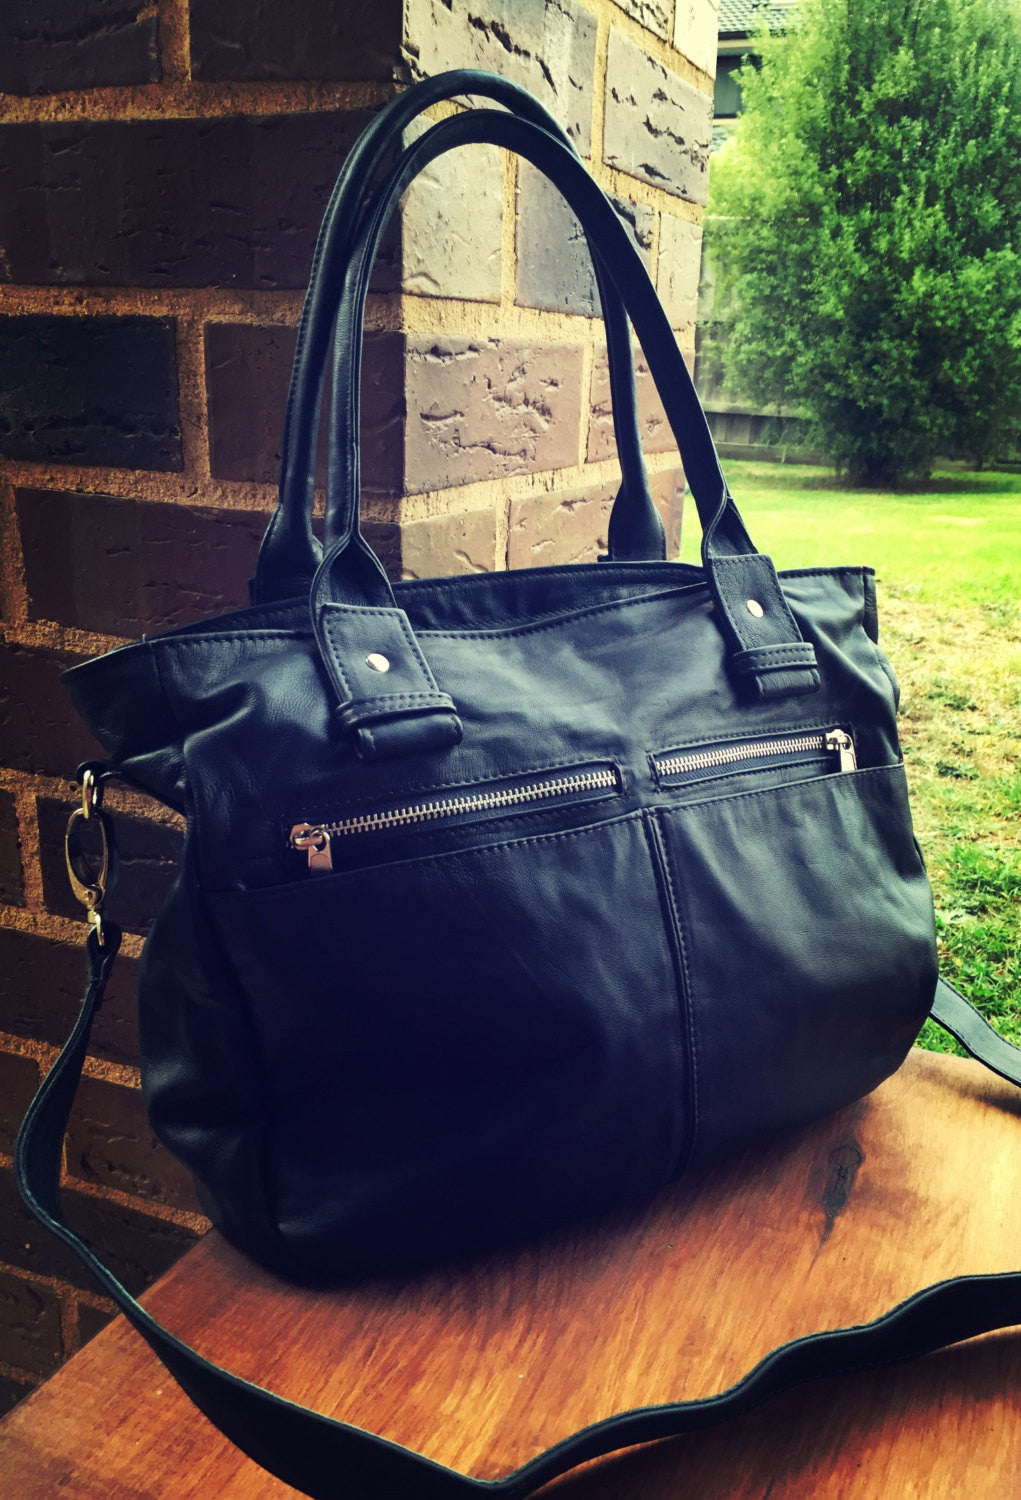 The Envoy - Everyday bag, laptop bag, shoulder bag